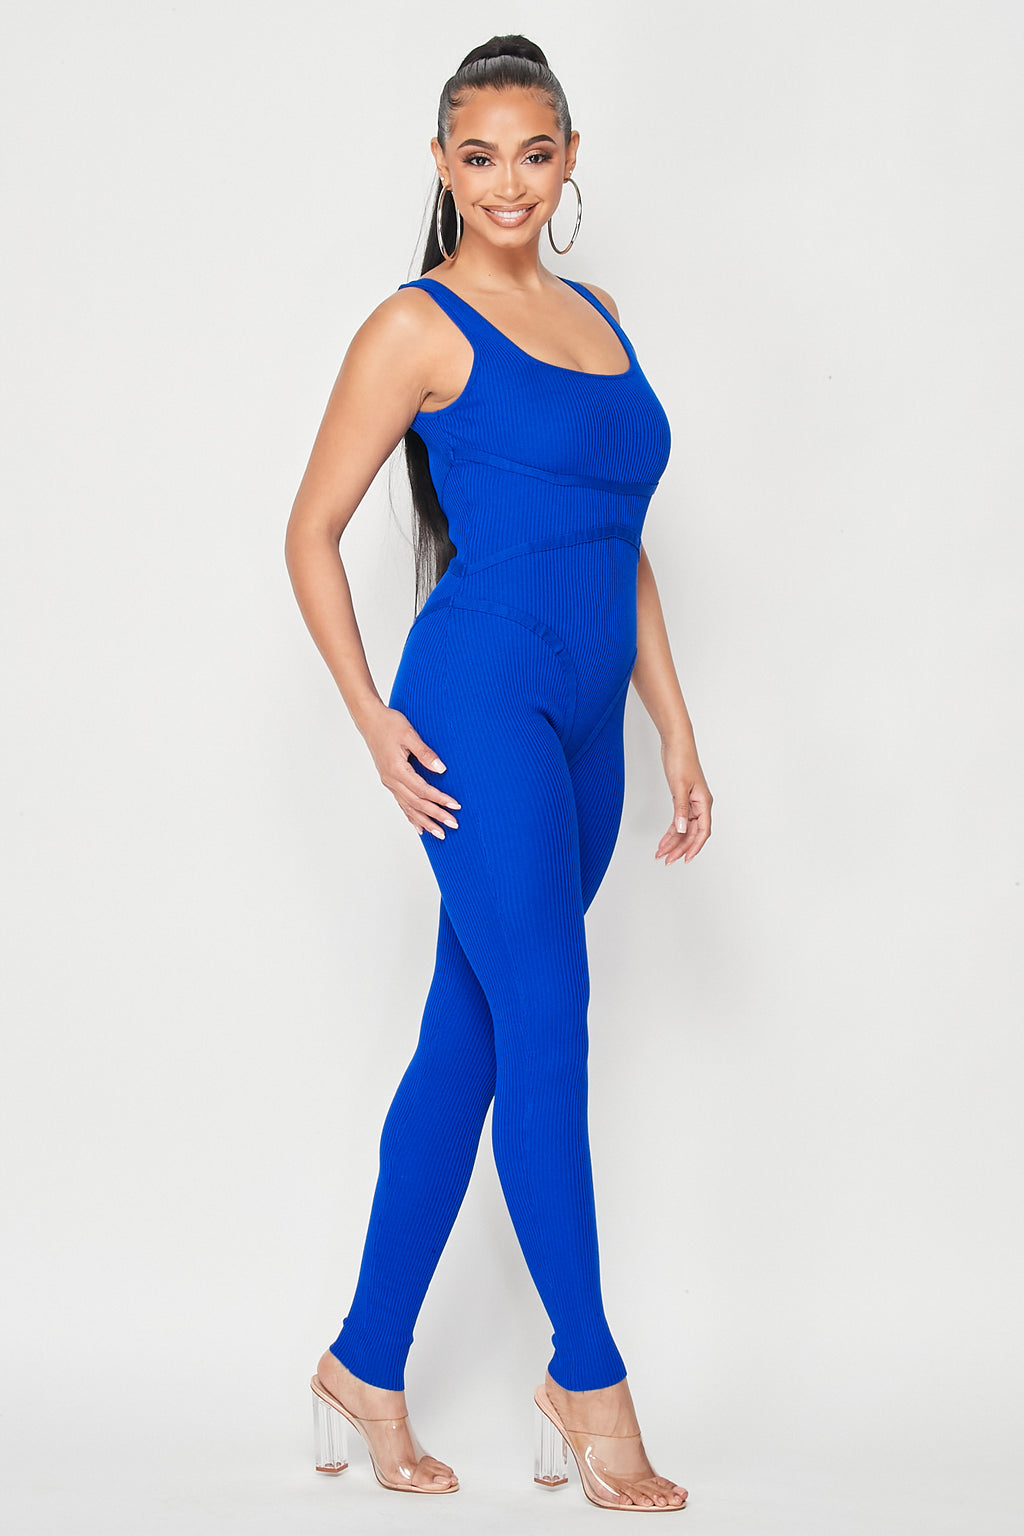 Hold Me Knit Jumpsuit in Royal